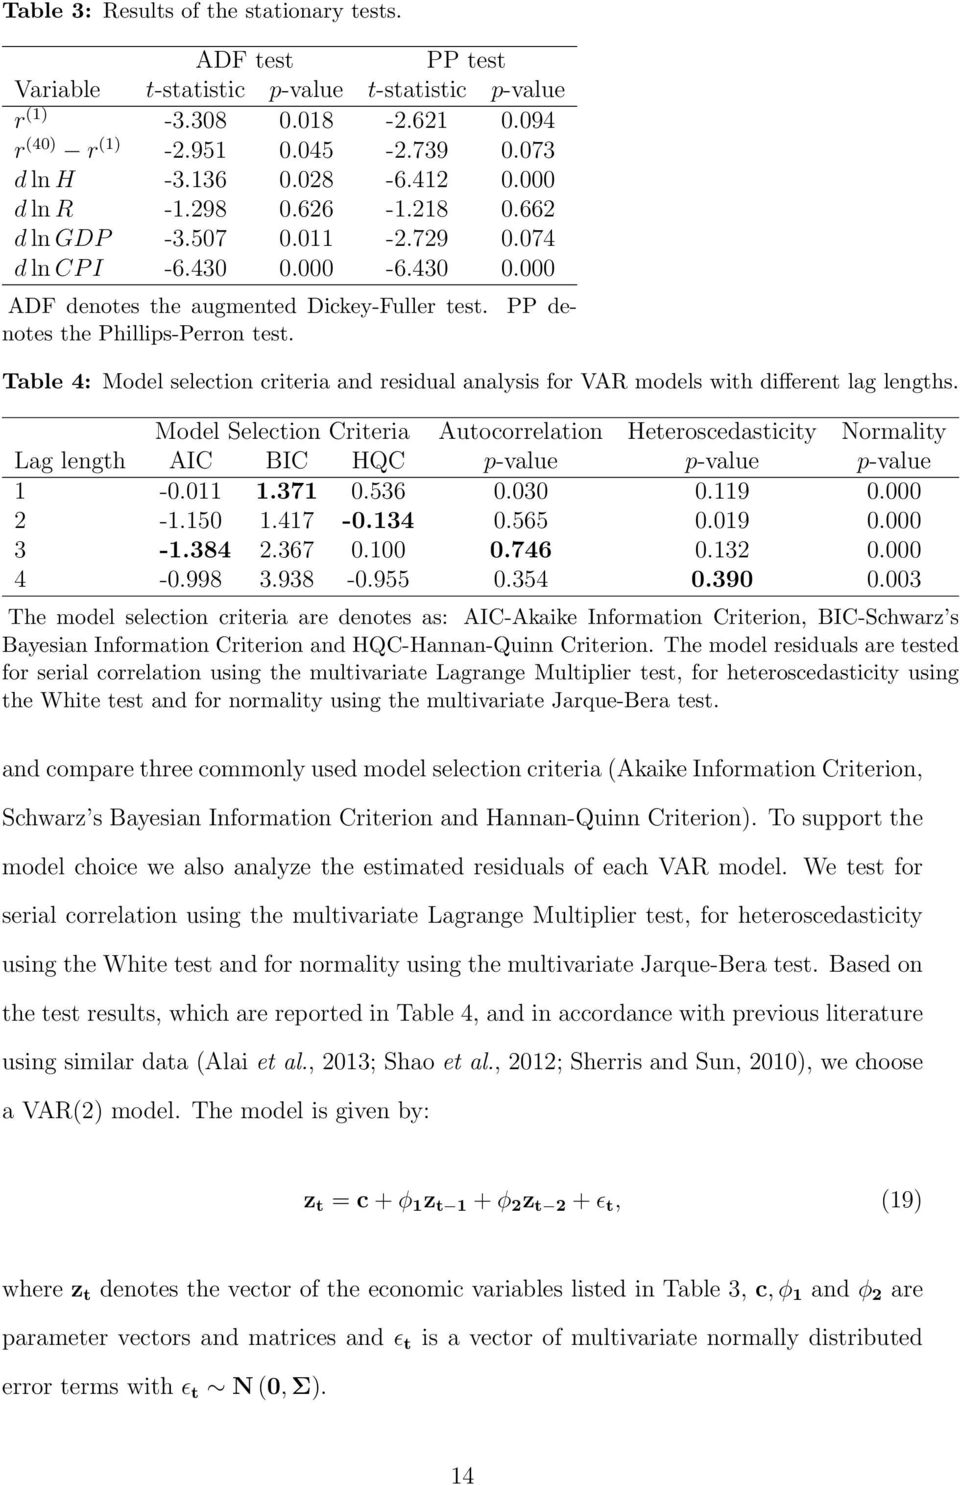 Table 4: Model selecion crieria and residual analysis for VAR models wih differen lag lenghs.